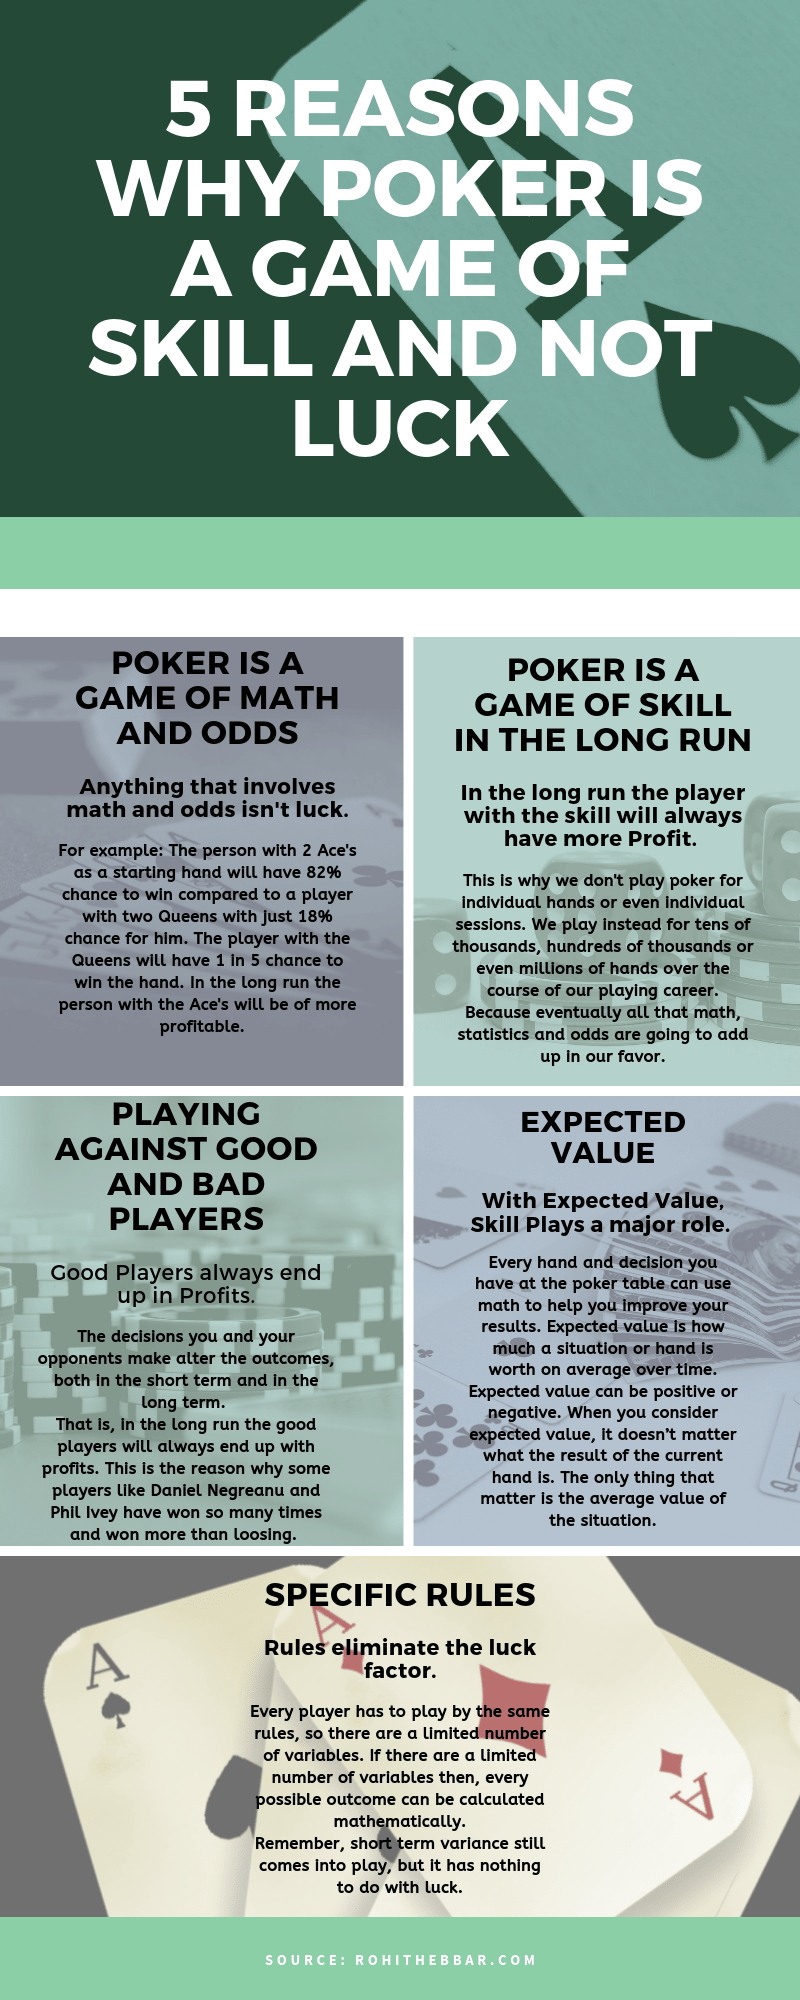 5 Reasons Why Poker Is A Game Of Skill And Not Luck Rohit Hebbar